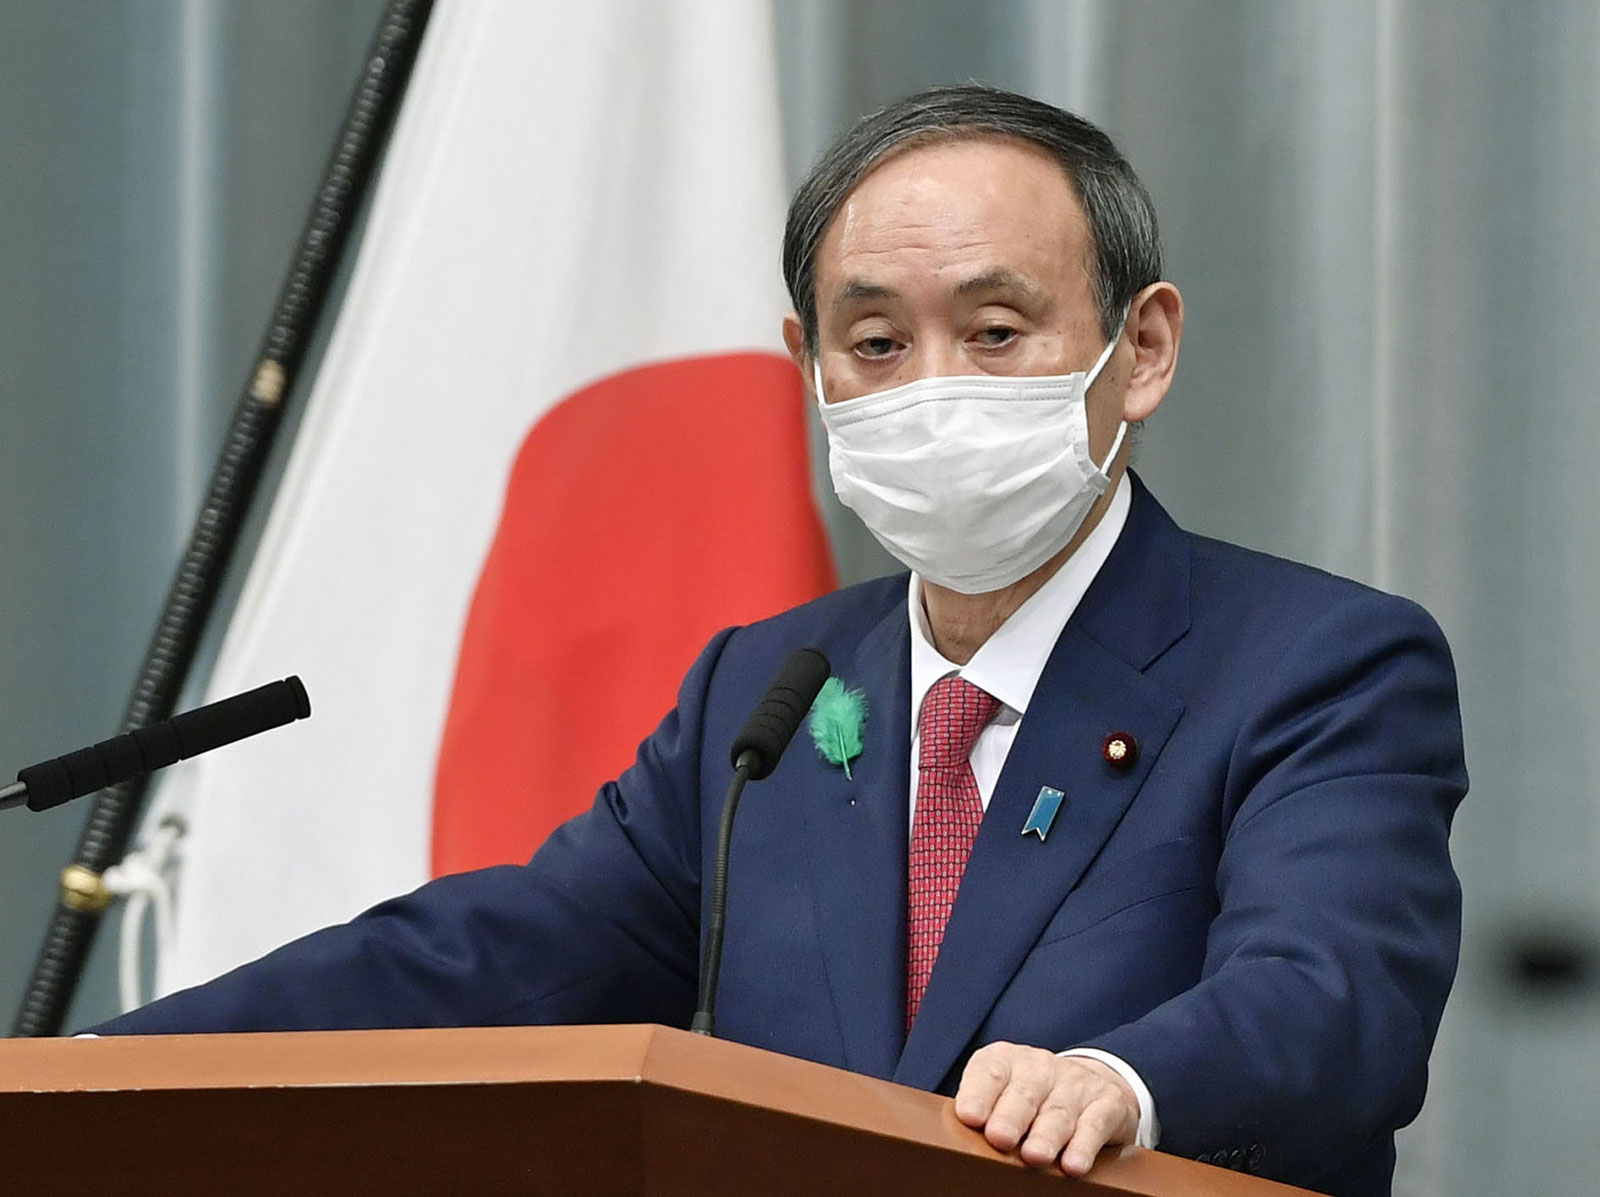 Japanese Chief Cabinet Secretary Yoshihide Suga at a news conference in Tokyo on April 21.